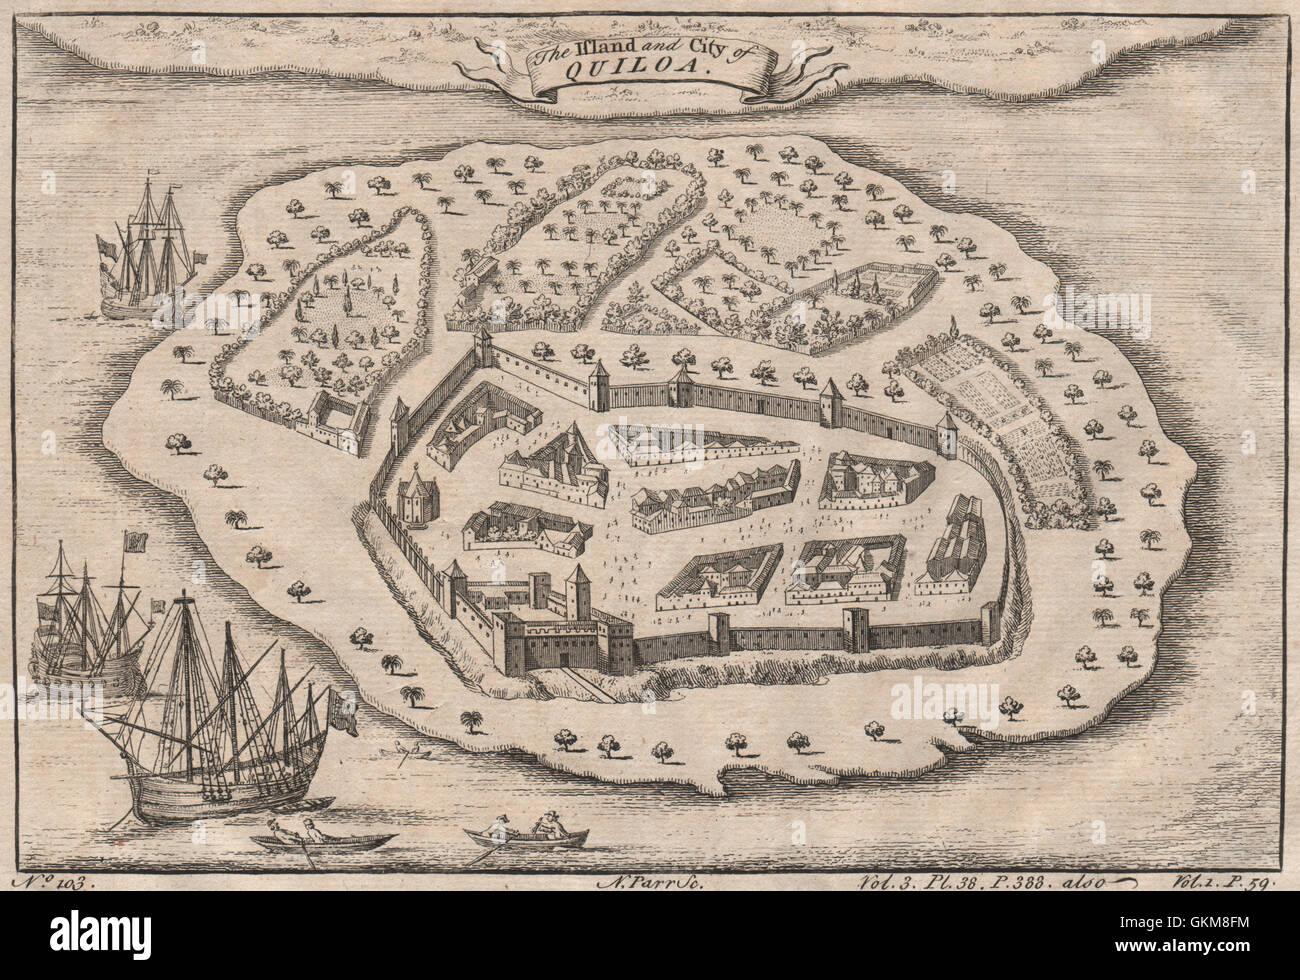 TANZANIA. 'The Island and City of Quiloa'. Kilwa Kisiwani. PARR, 1746 old map - Stock Image